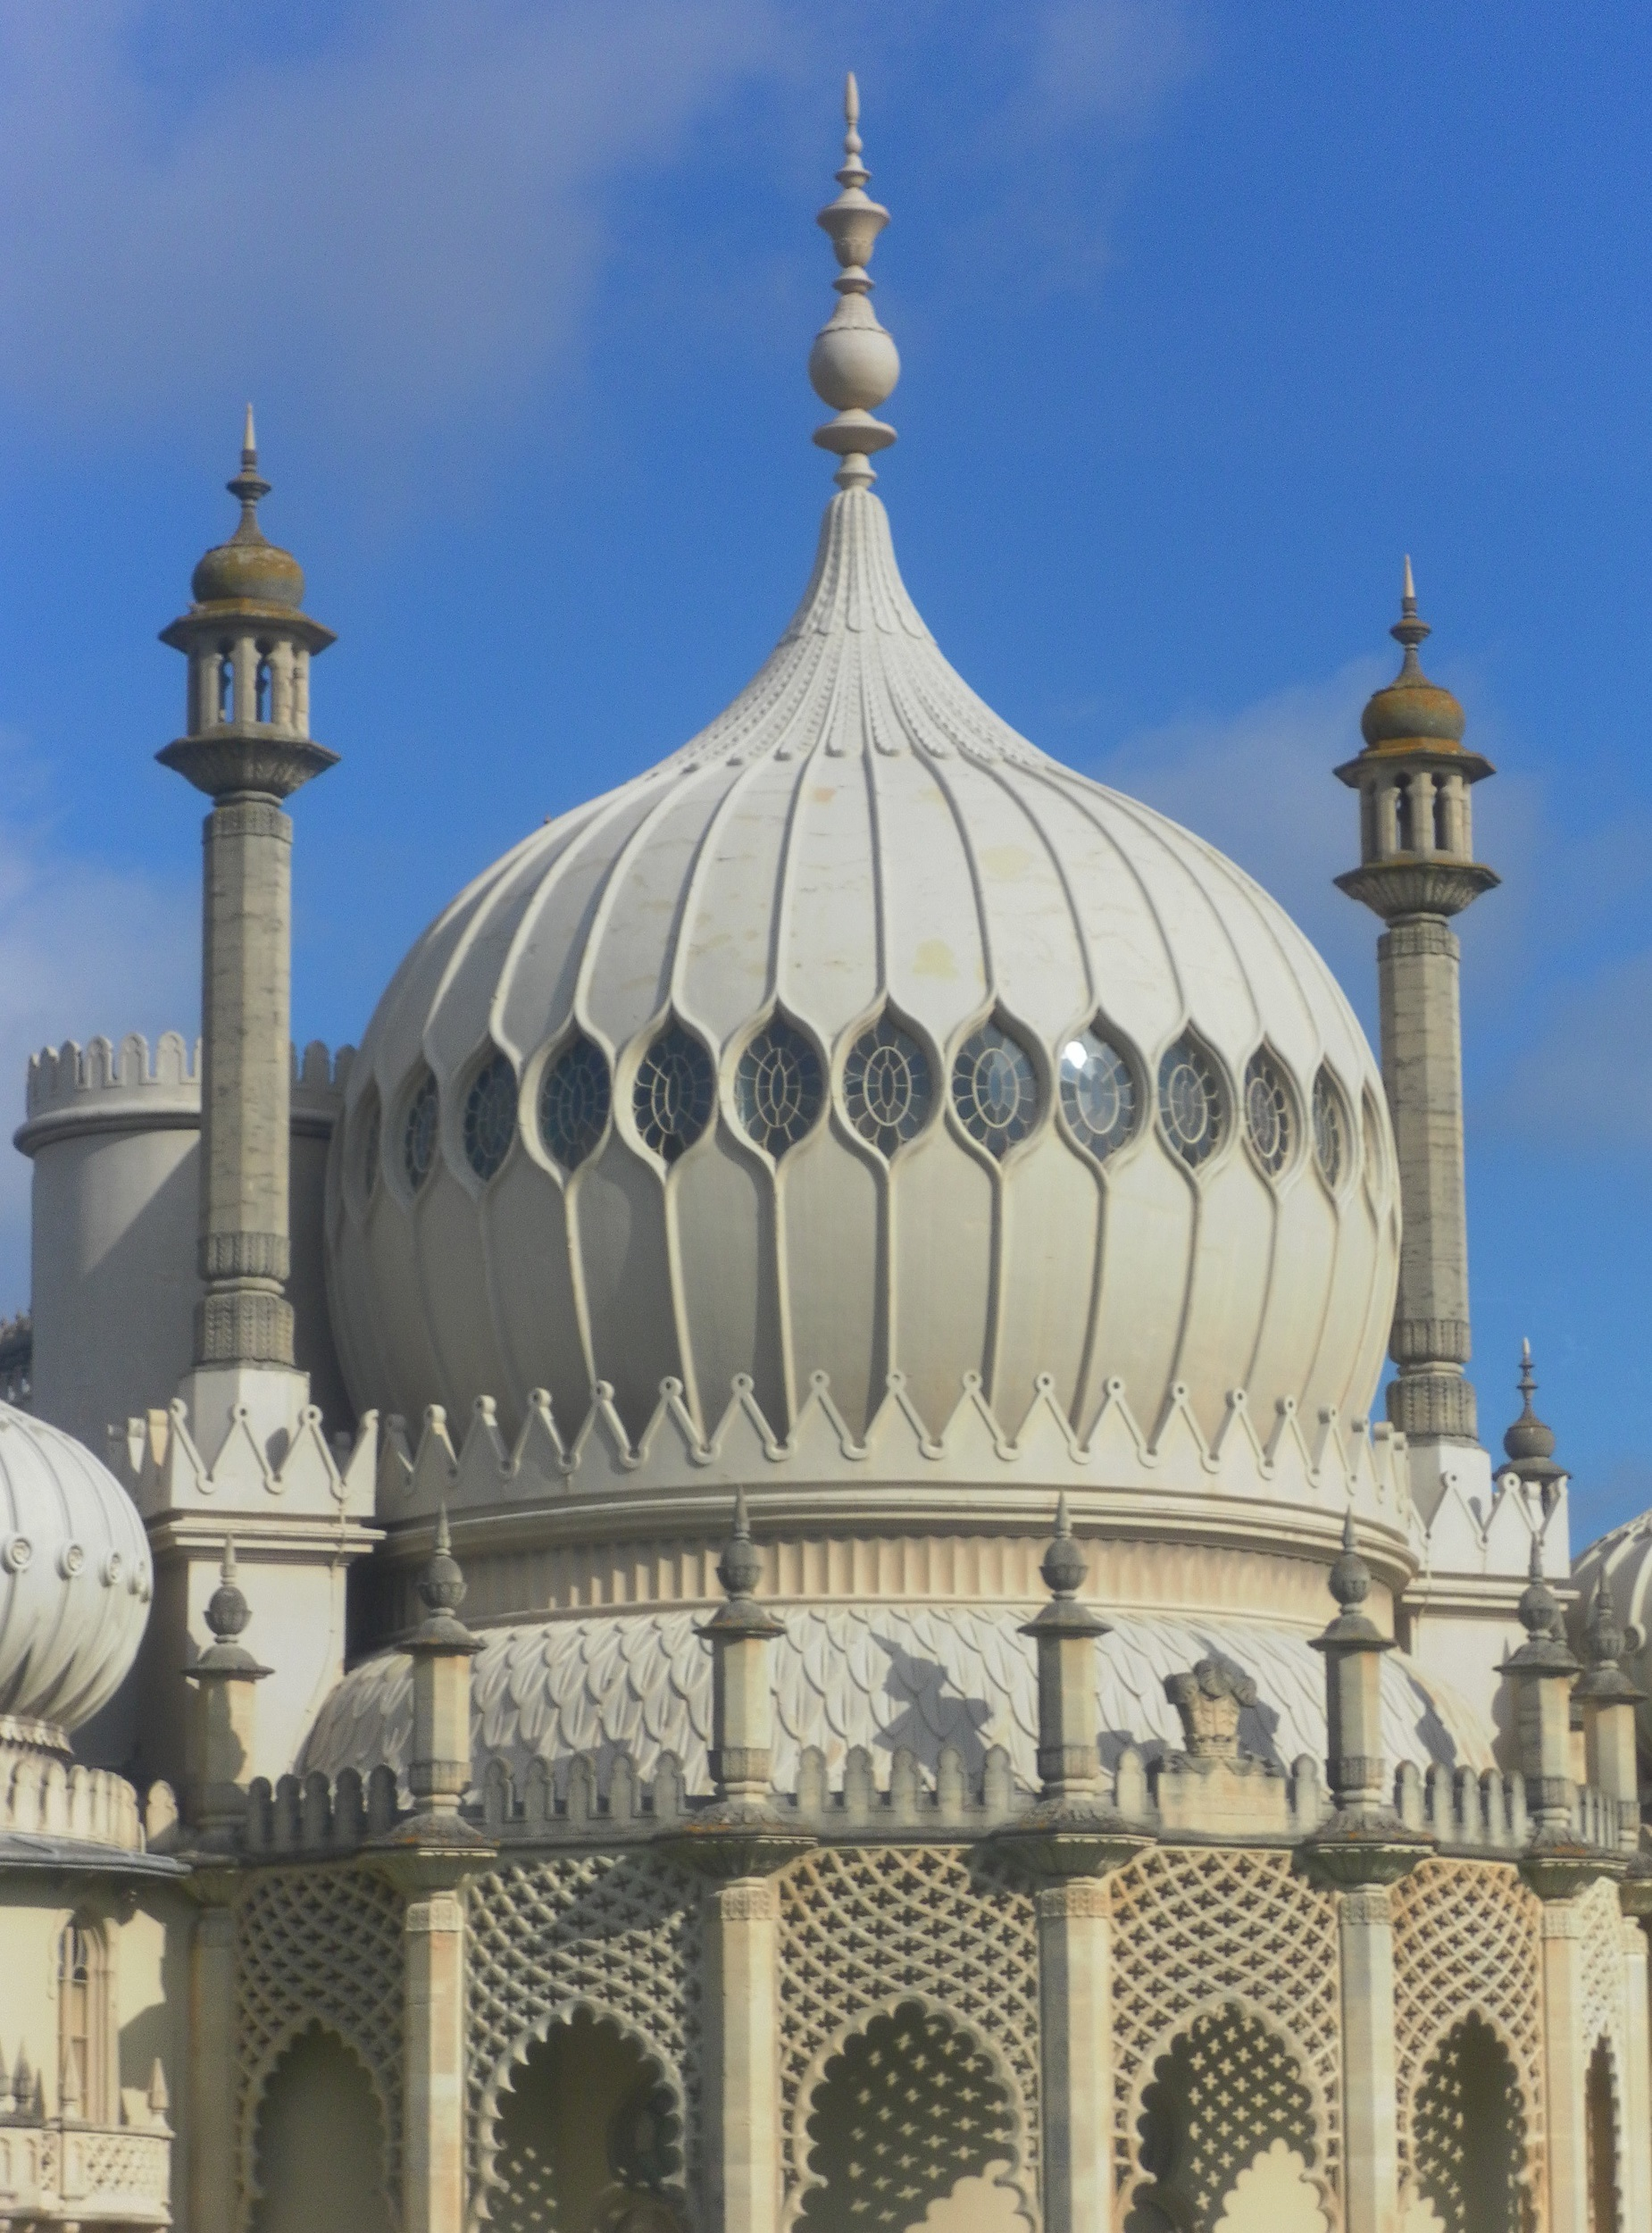 buildings and architecture of brighton and hove - wikiwand